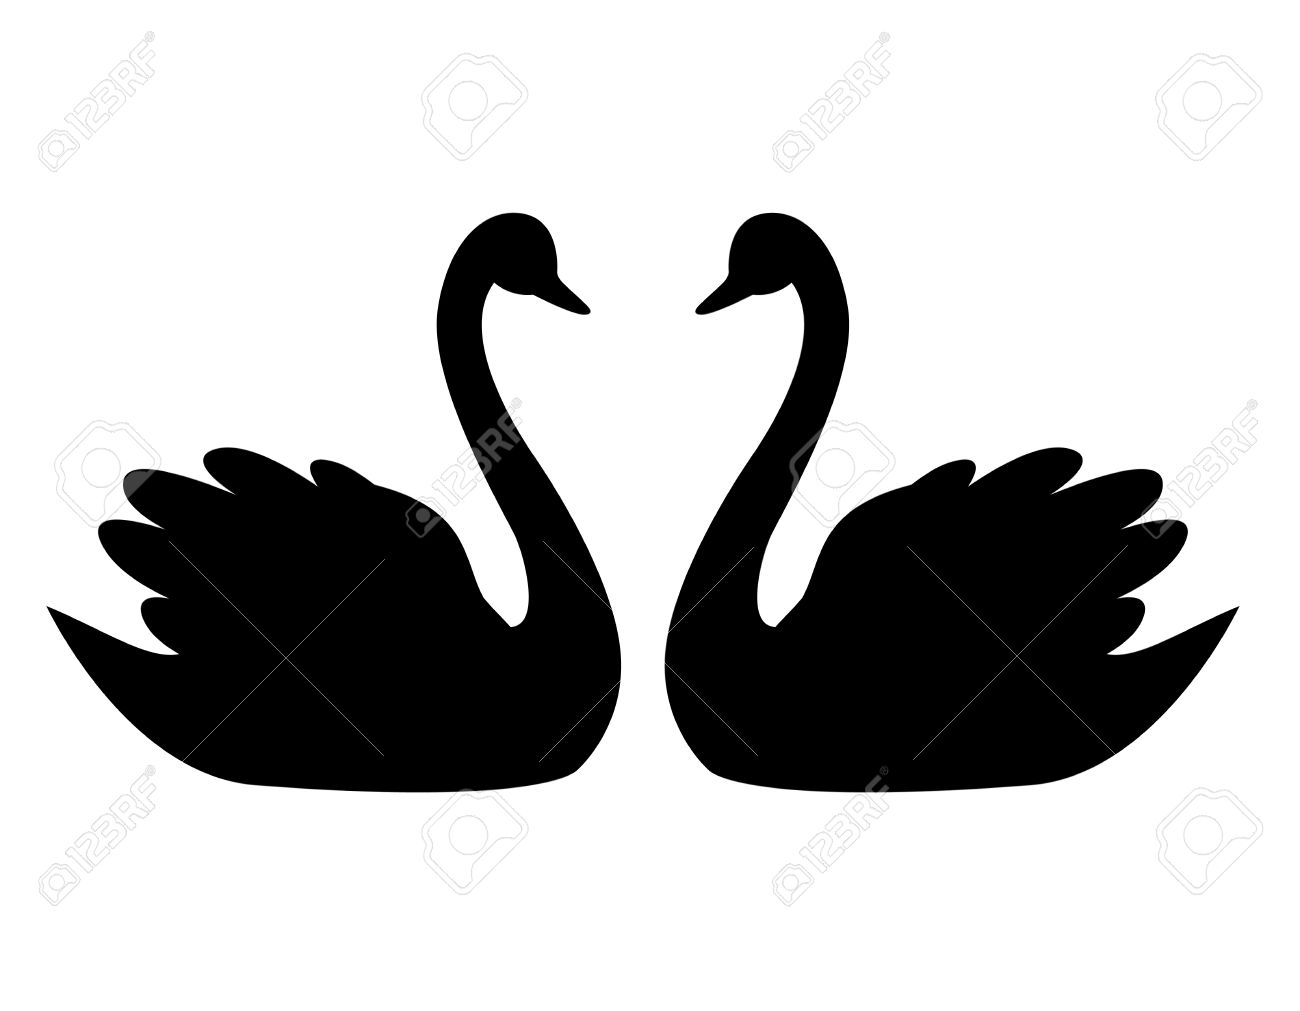 Black Swan clipart #3, Download drawings